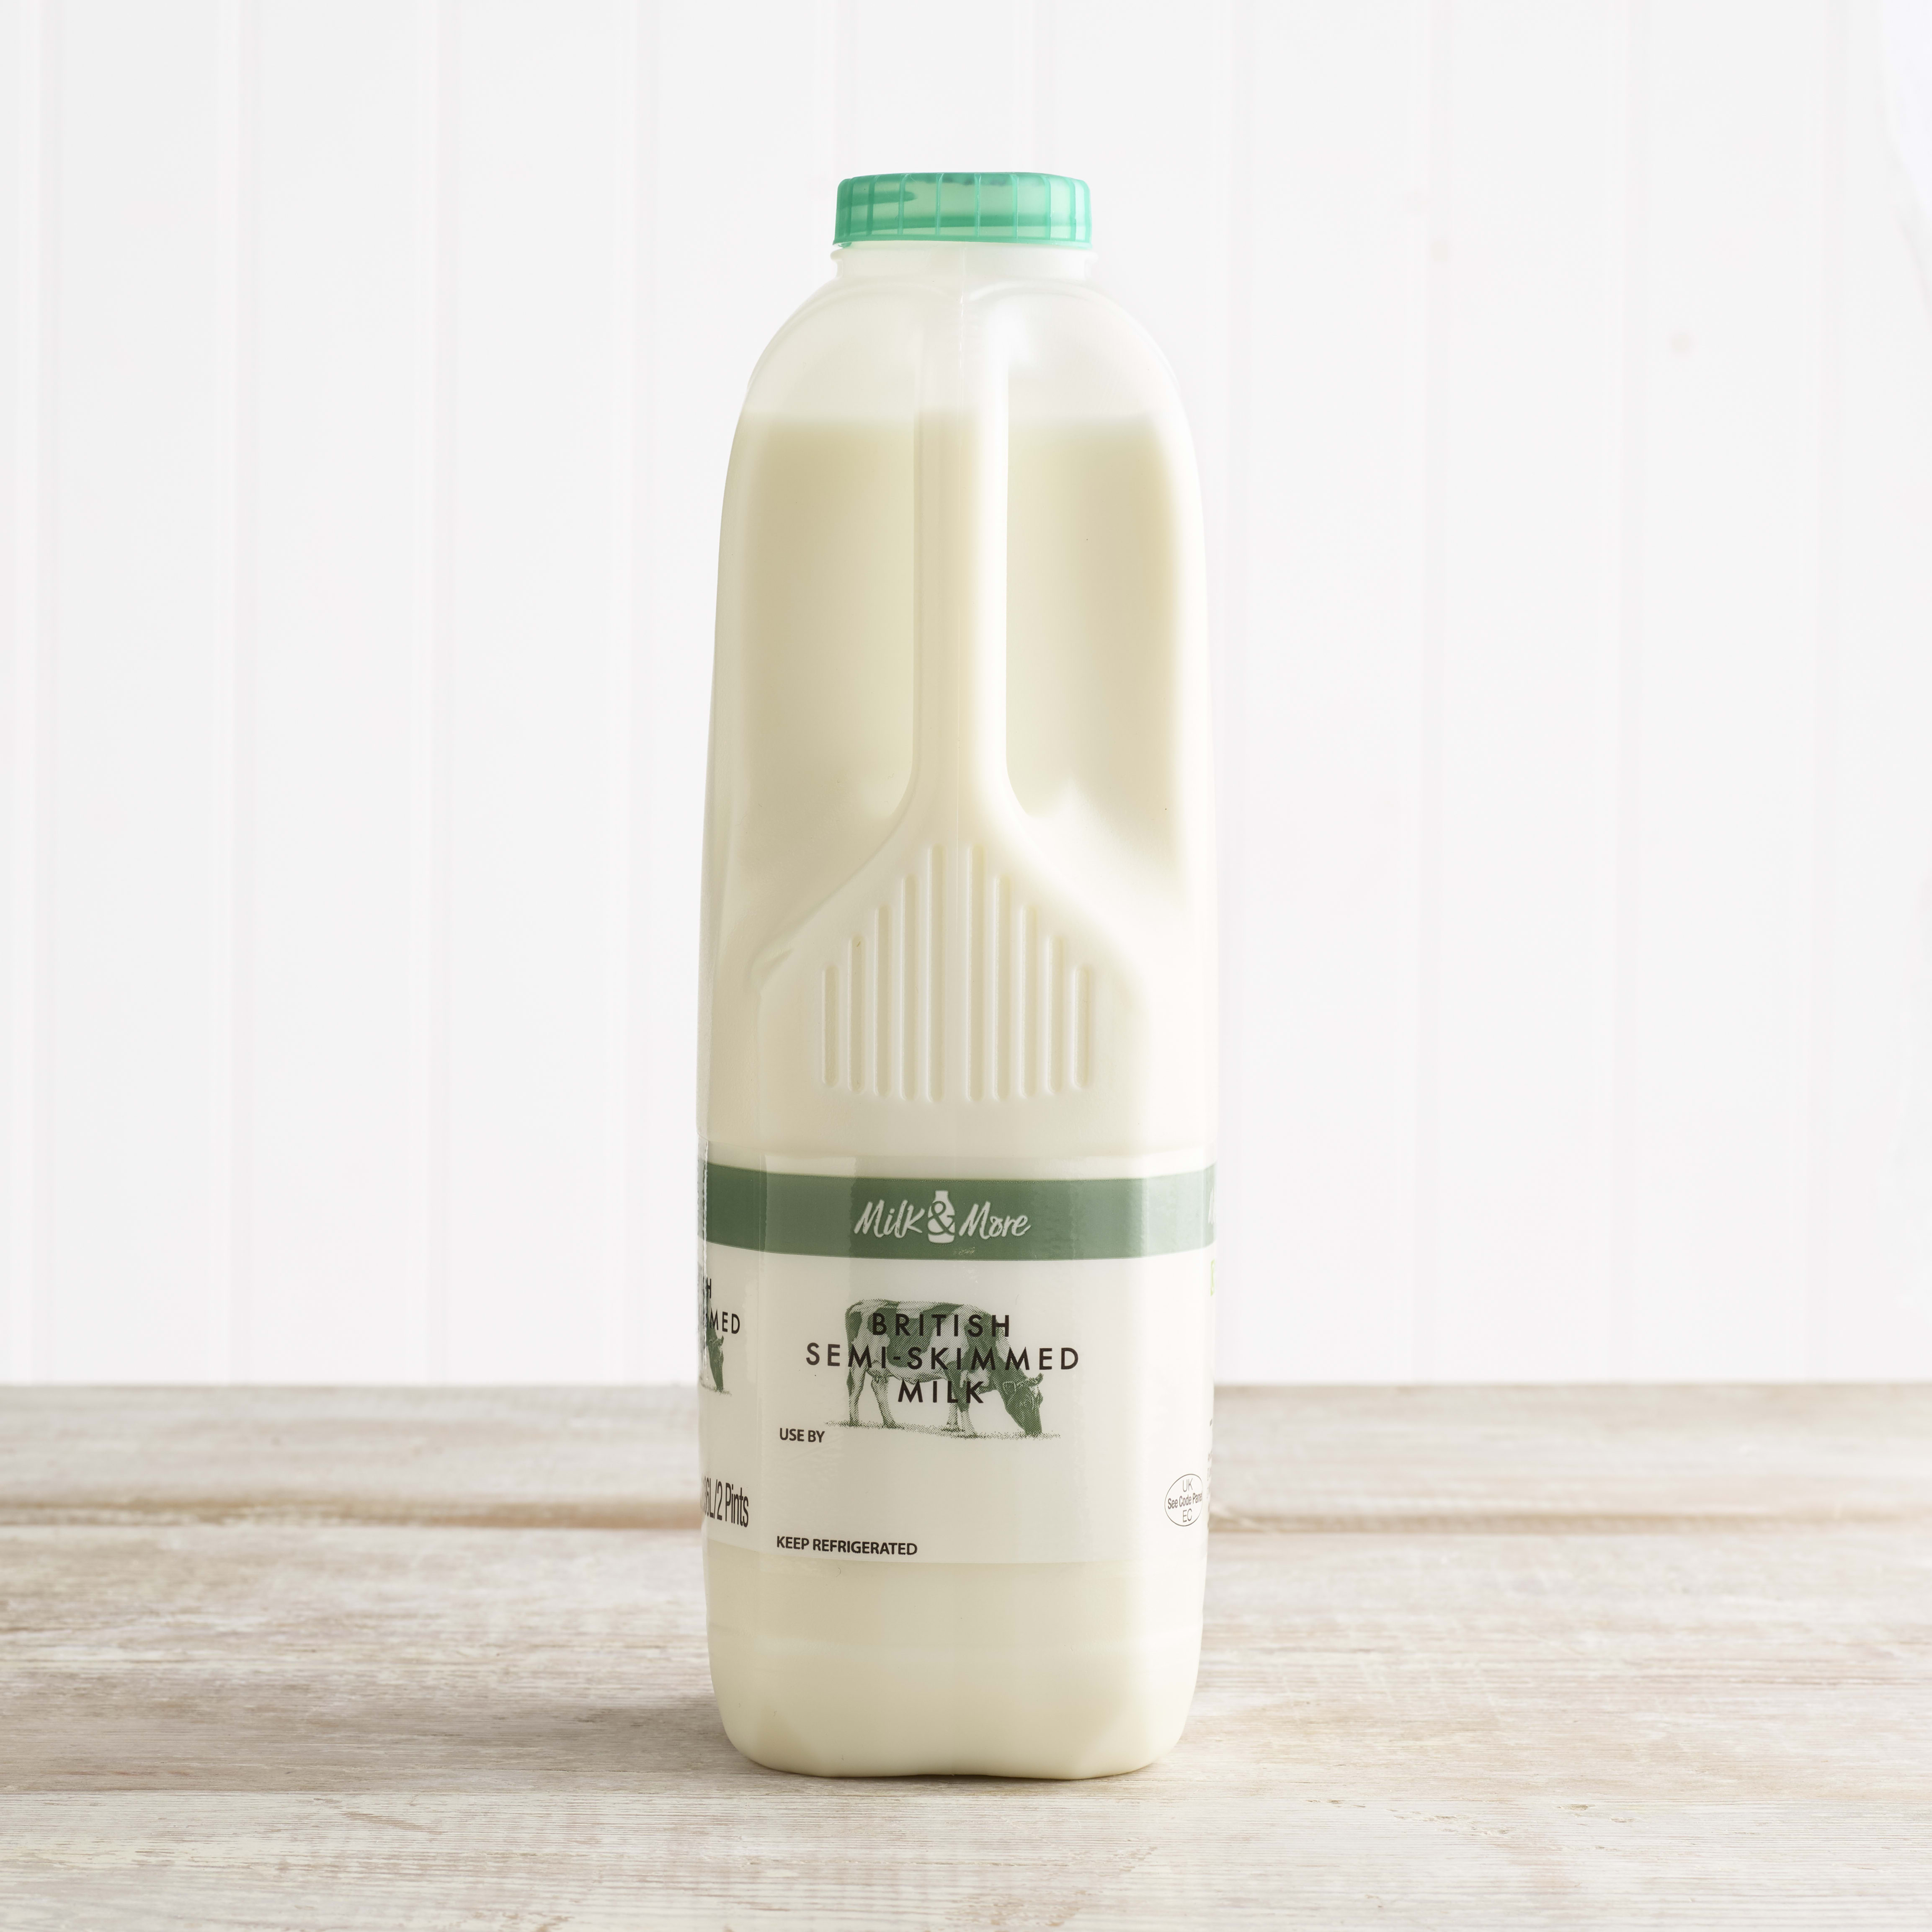 Milk & More Semi Skimmed Milk 2pt